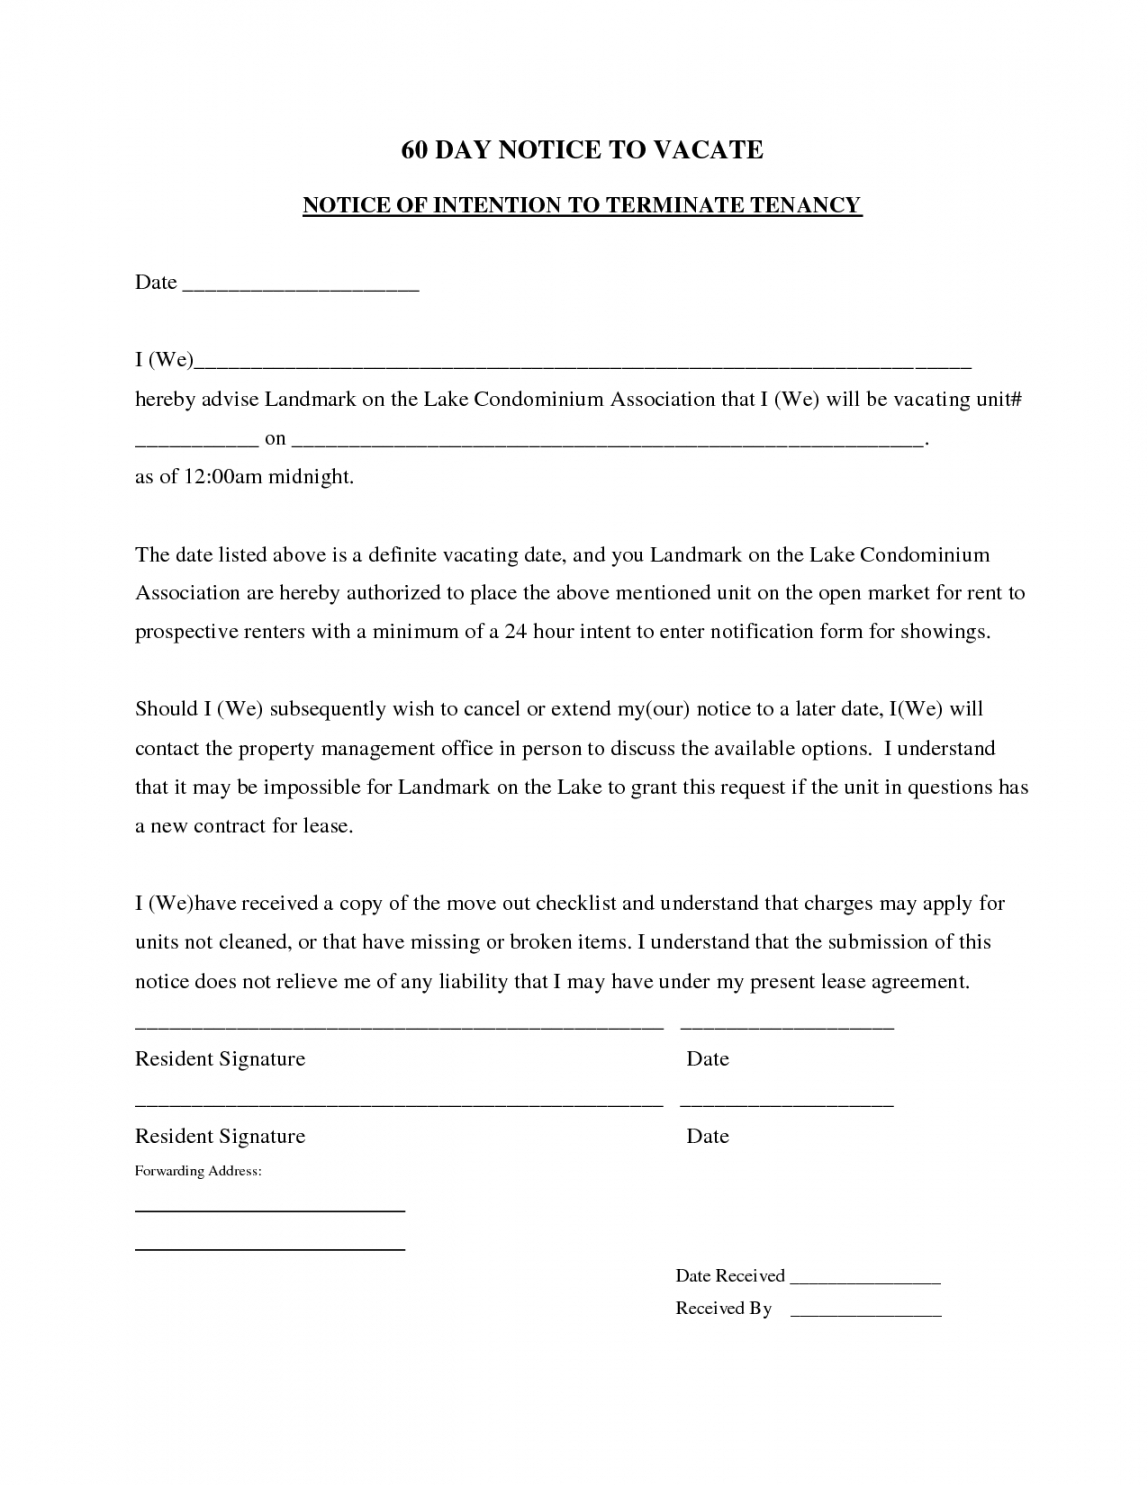 costume index of cdn152008574 letter to vacate property sample 60 day notice 60 day notice to vacate apartment template